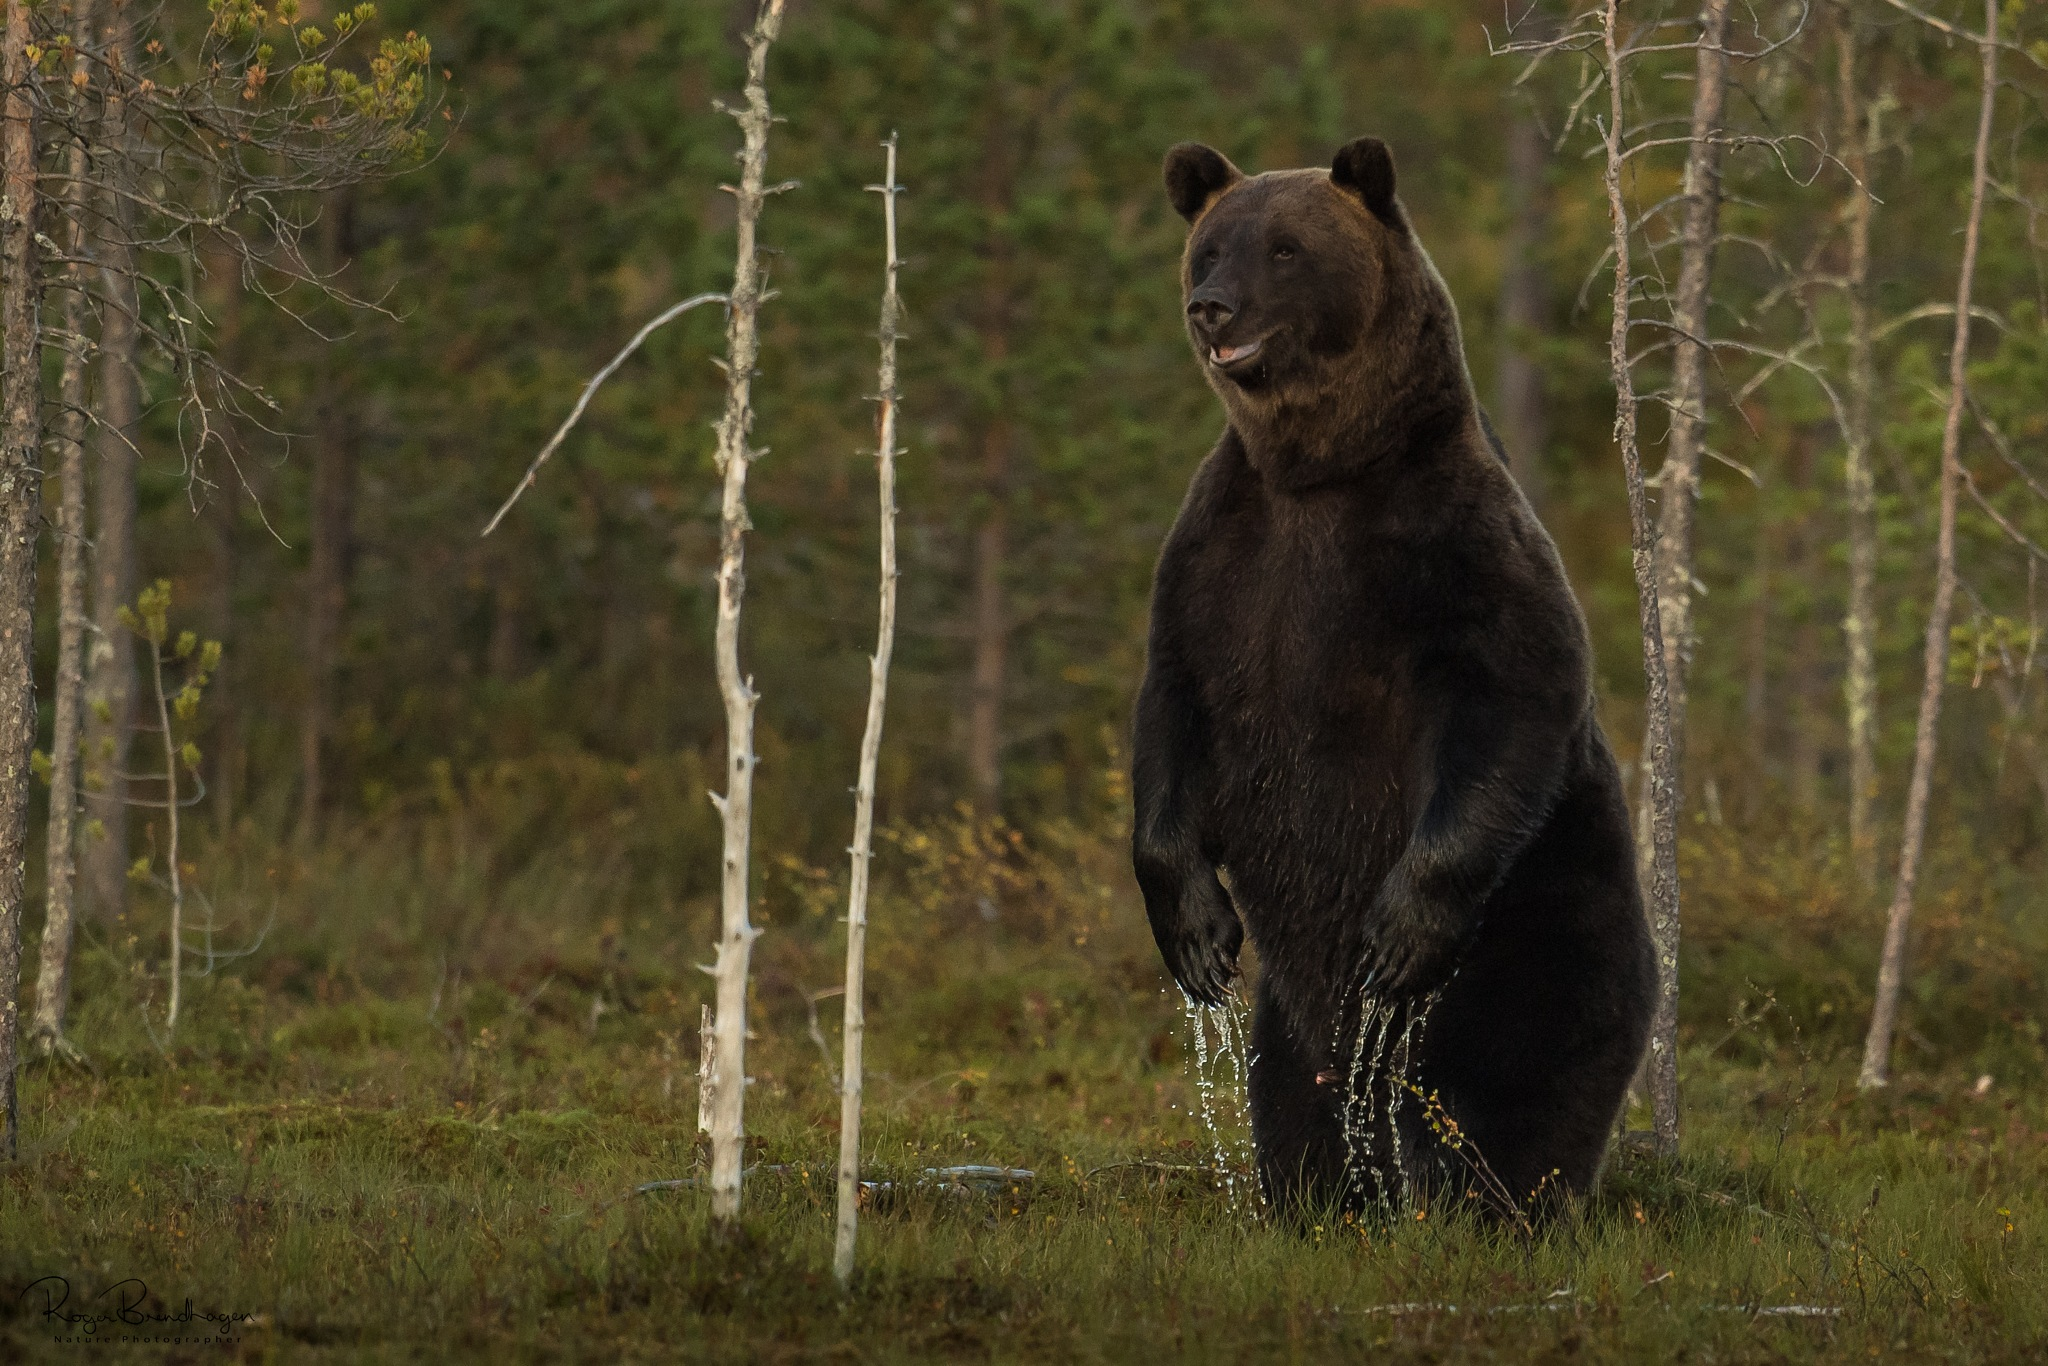 The Brown bear by Roger Brendhagen